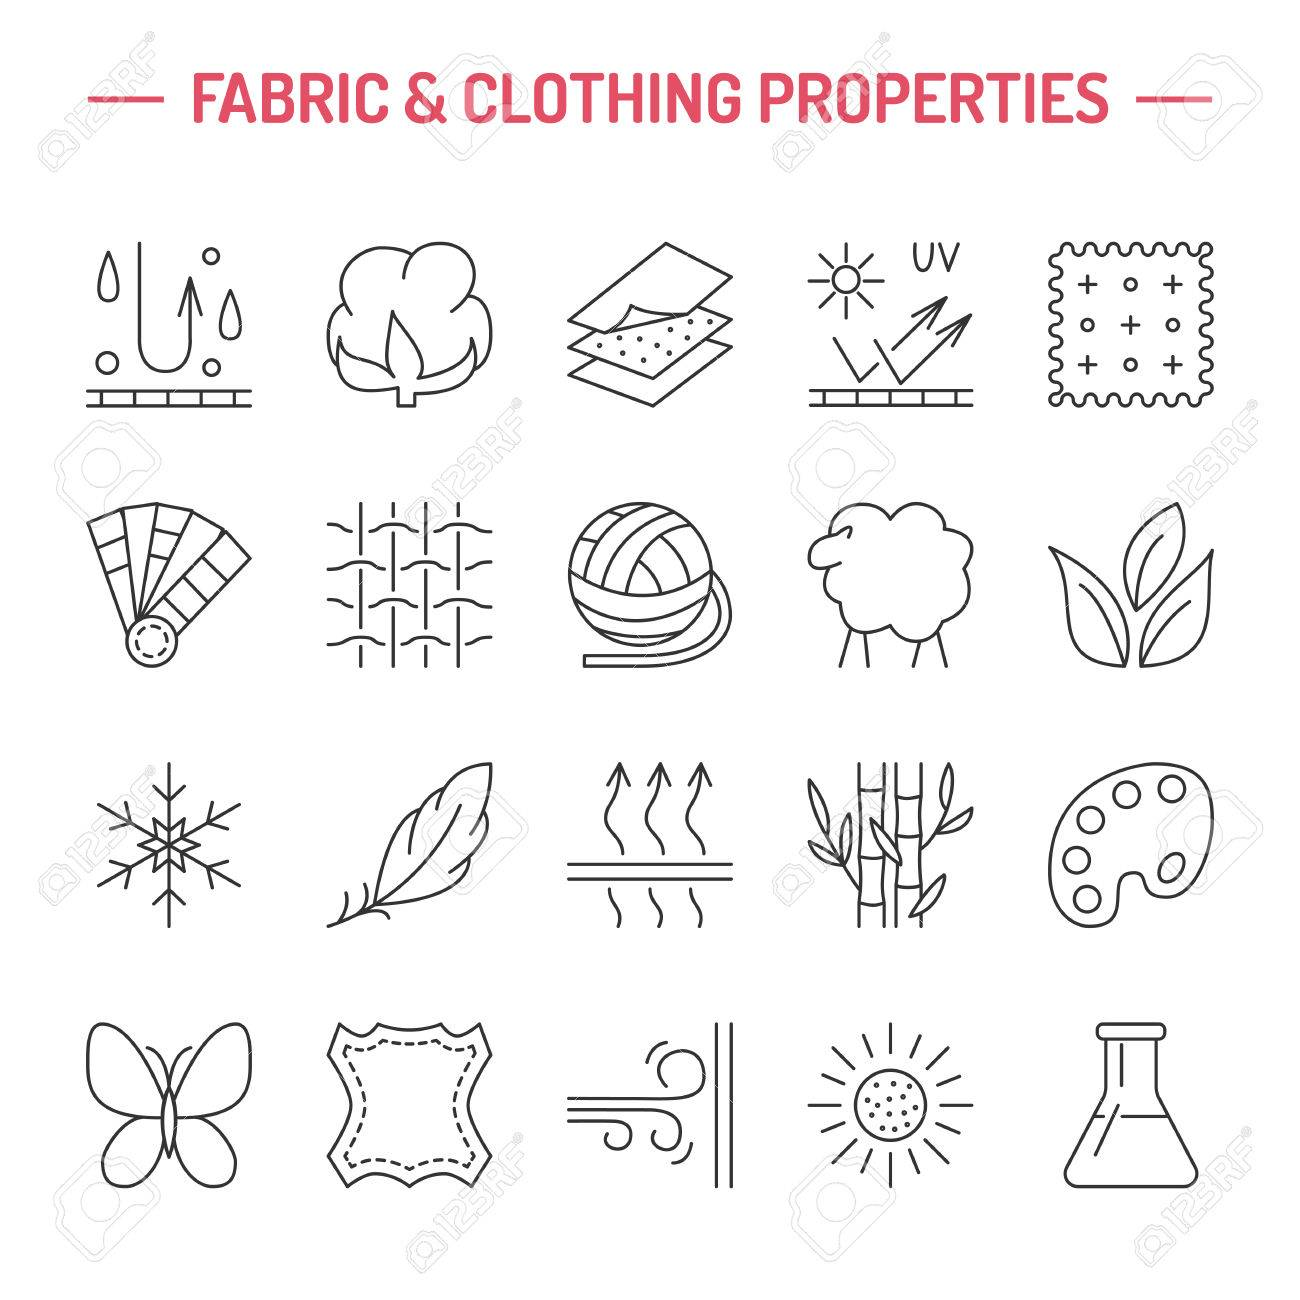 Vector line icons of fabric feature, garments property symbols. Elements - cotton, wool, waterproof, uv protection. Linear wear labels, textile industry pictograms for clothes. - 66481894